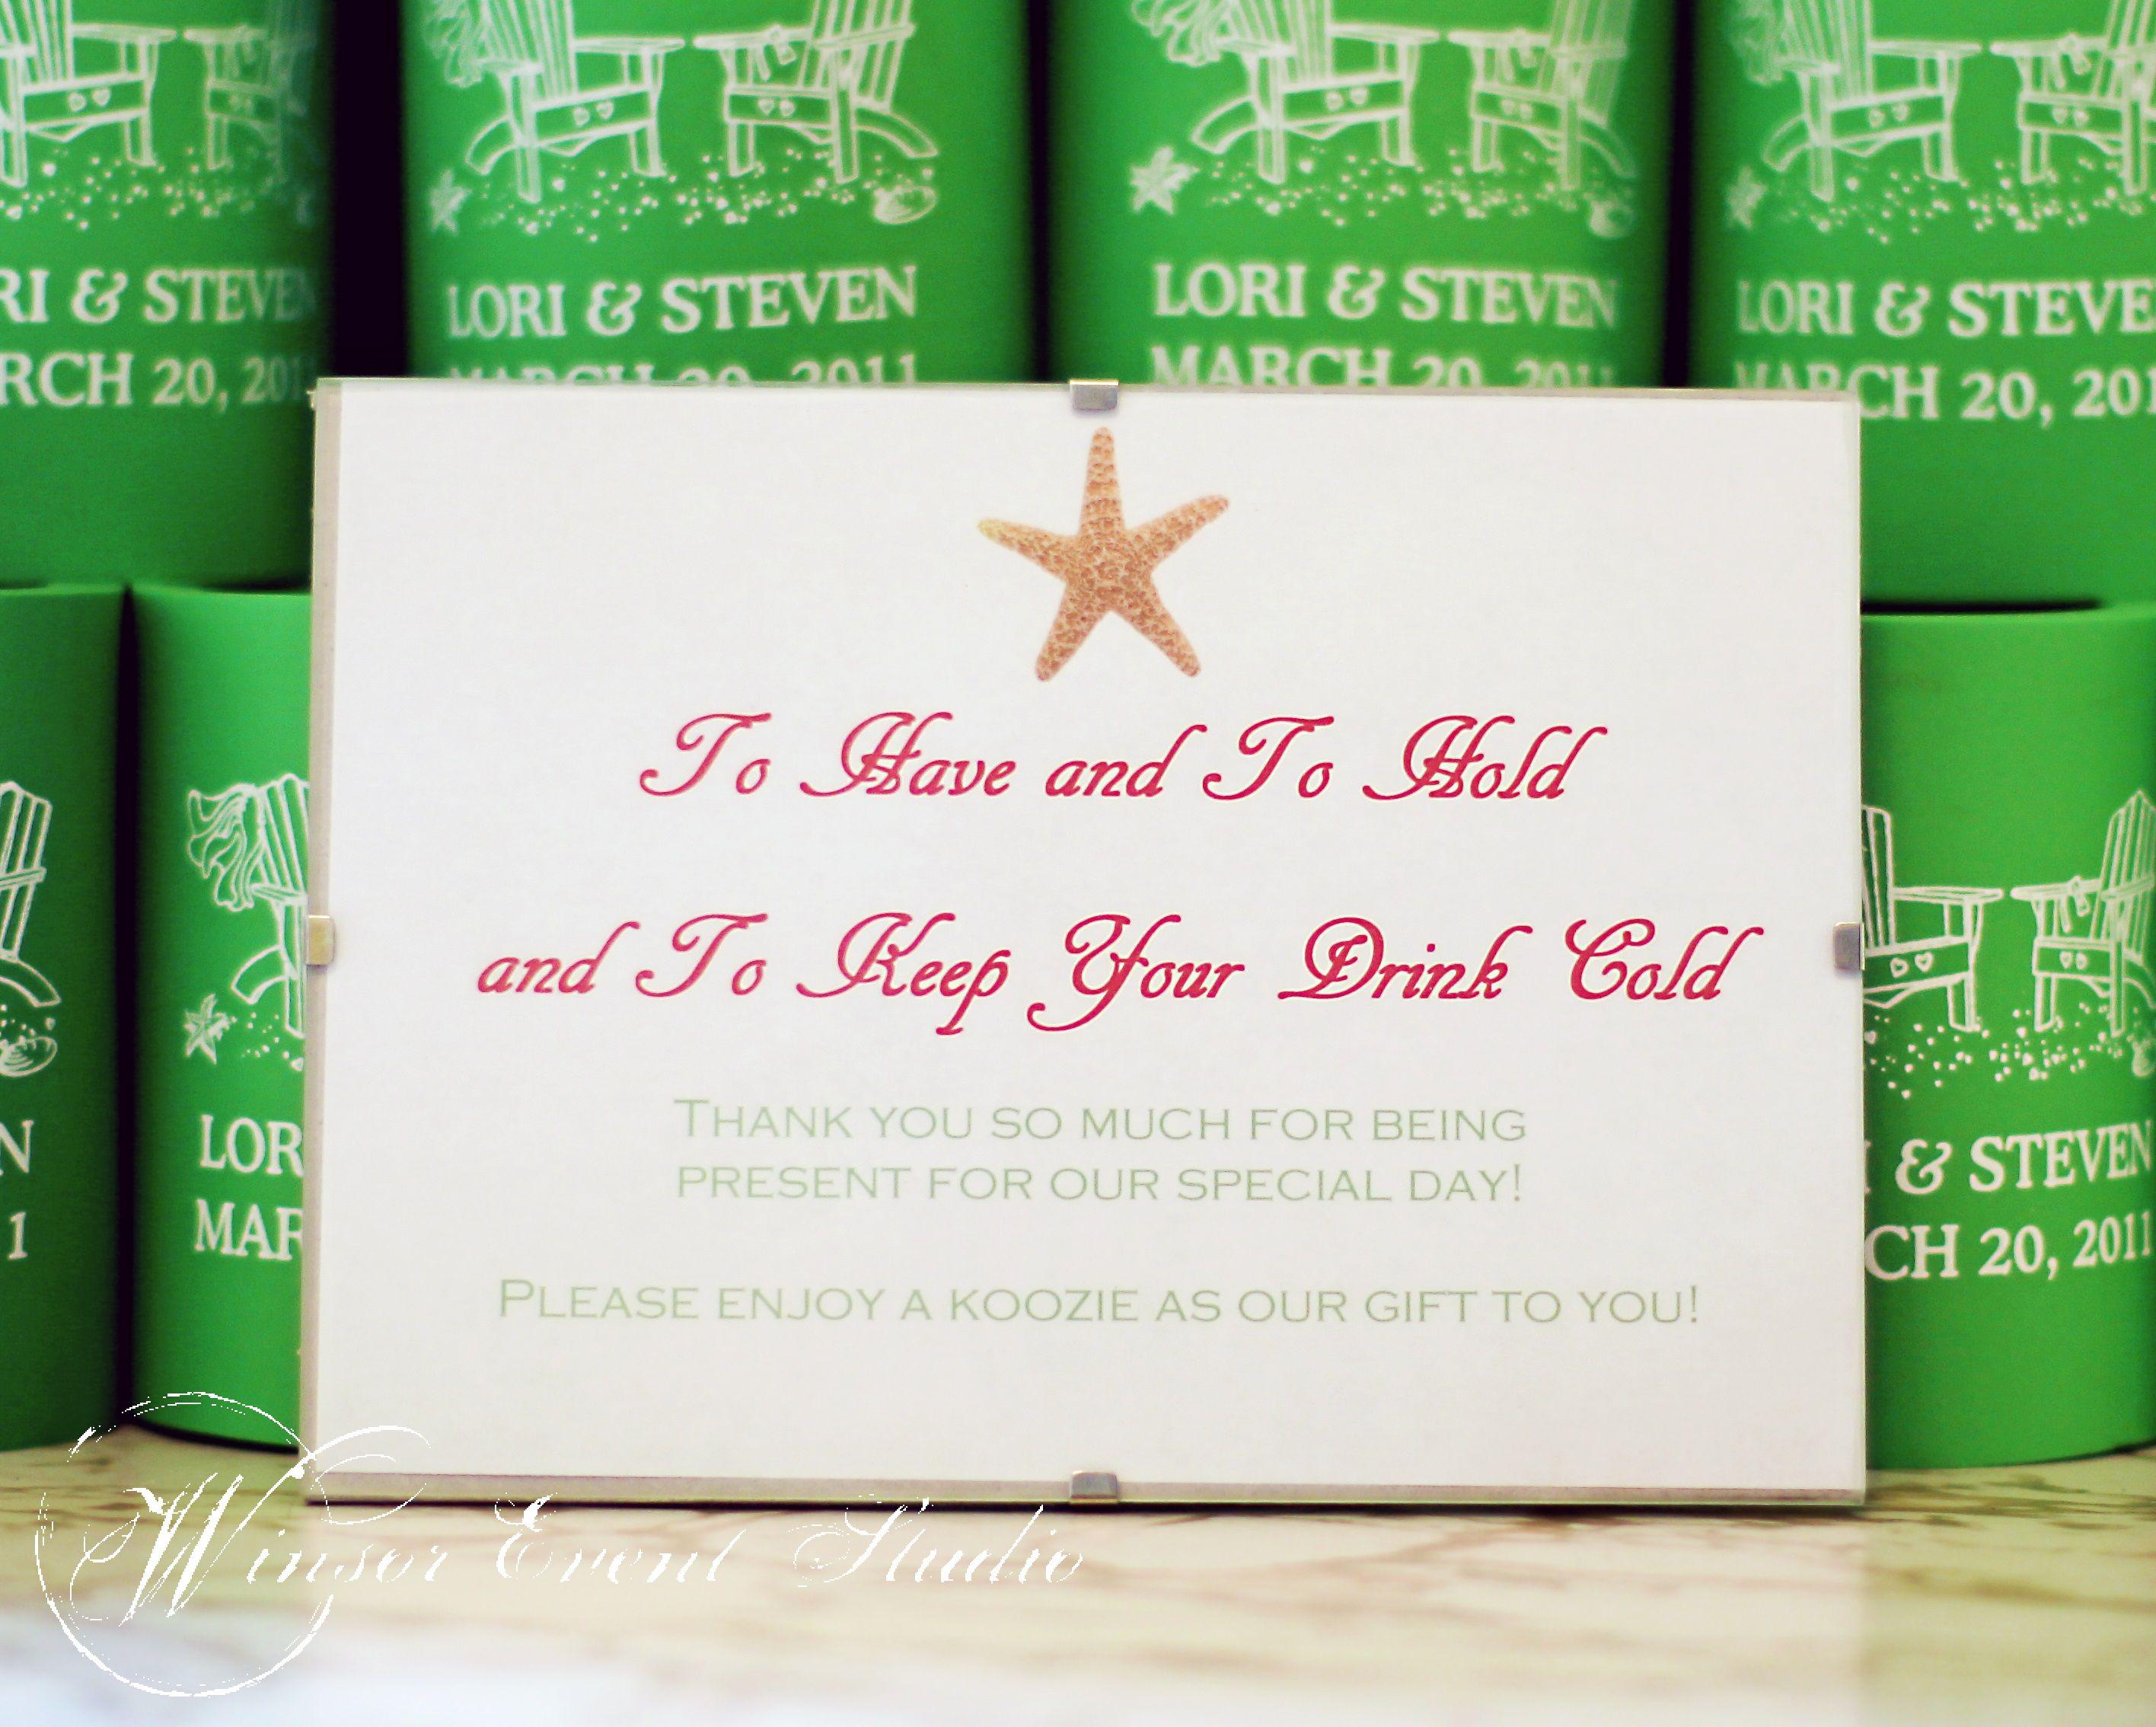 Custom koozie favors were a perfect treat for laid-back guests ...